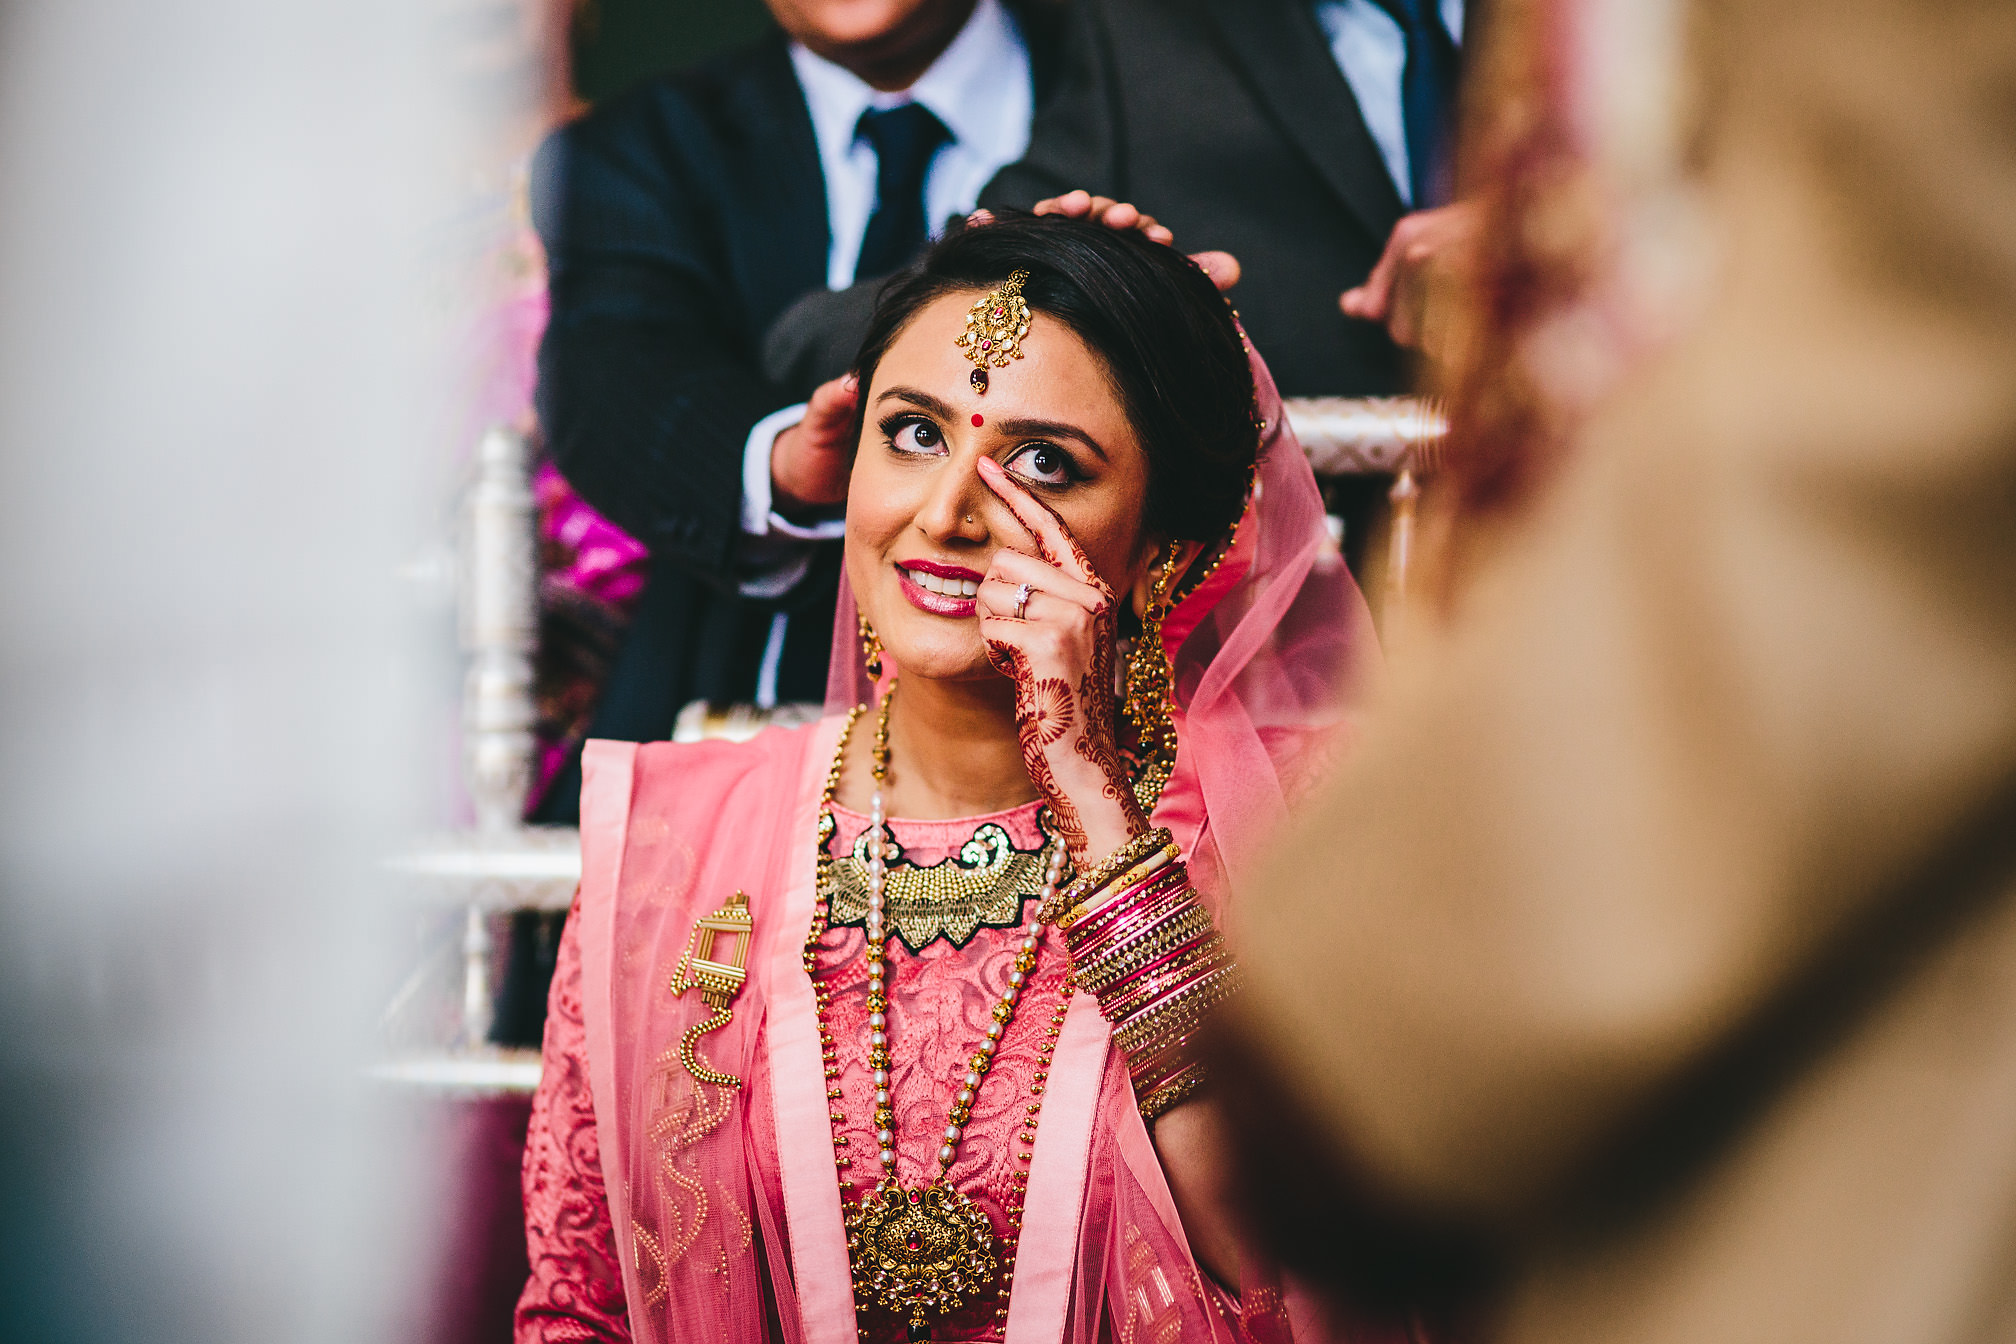 Hindu Bride crying